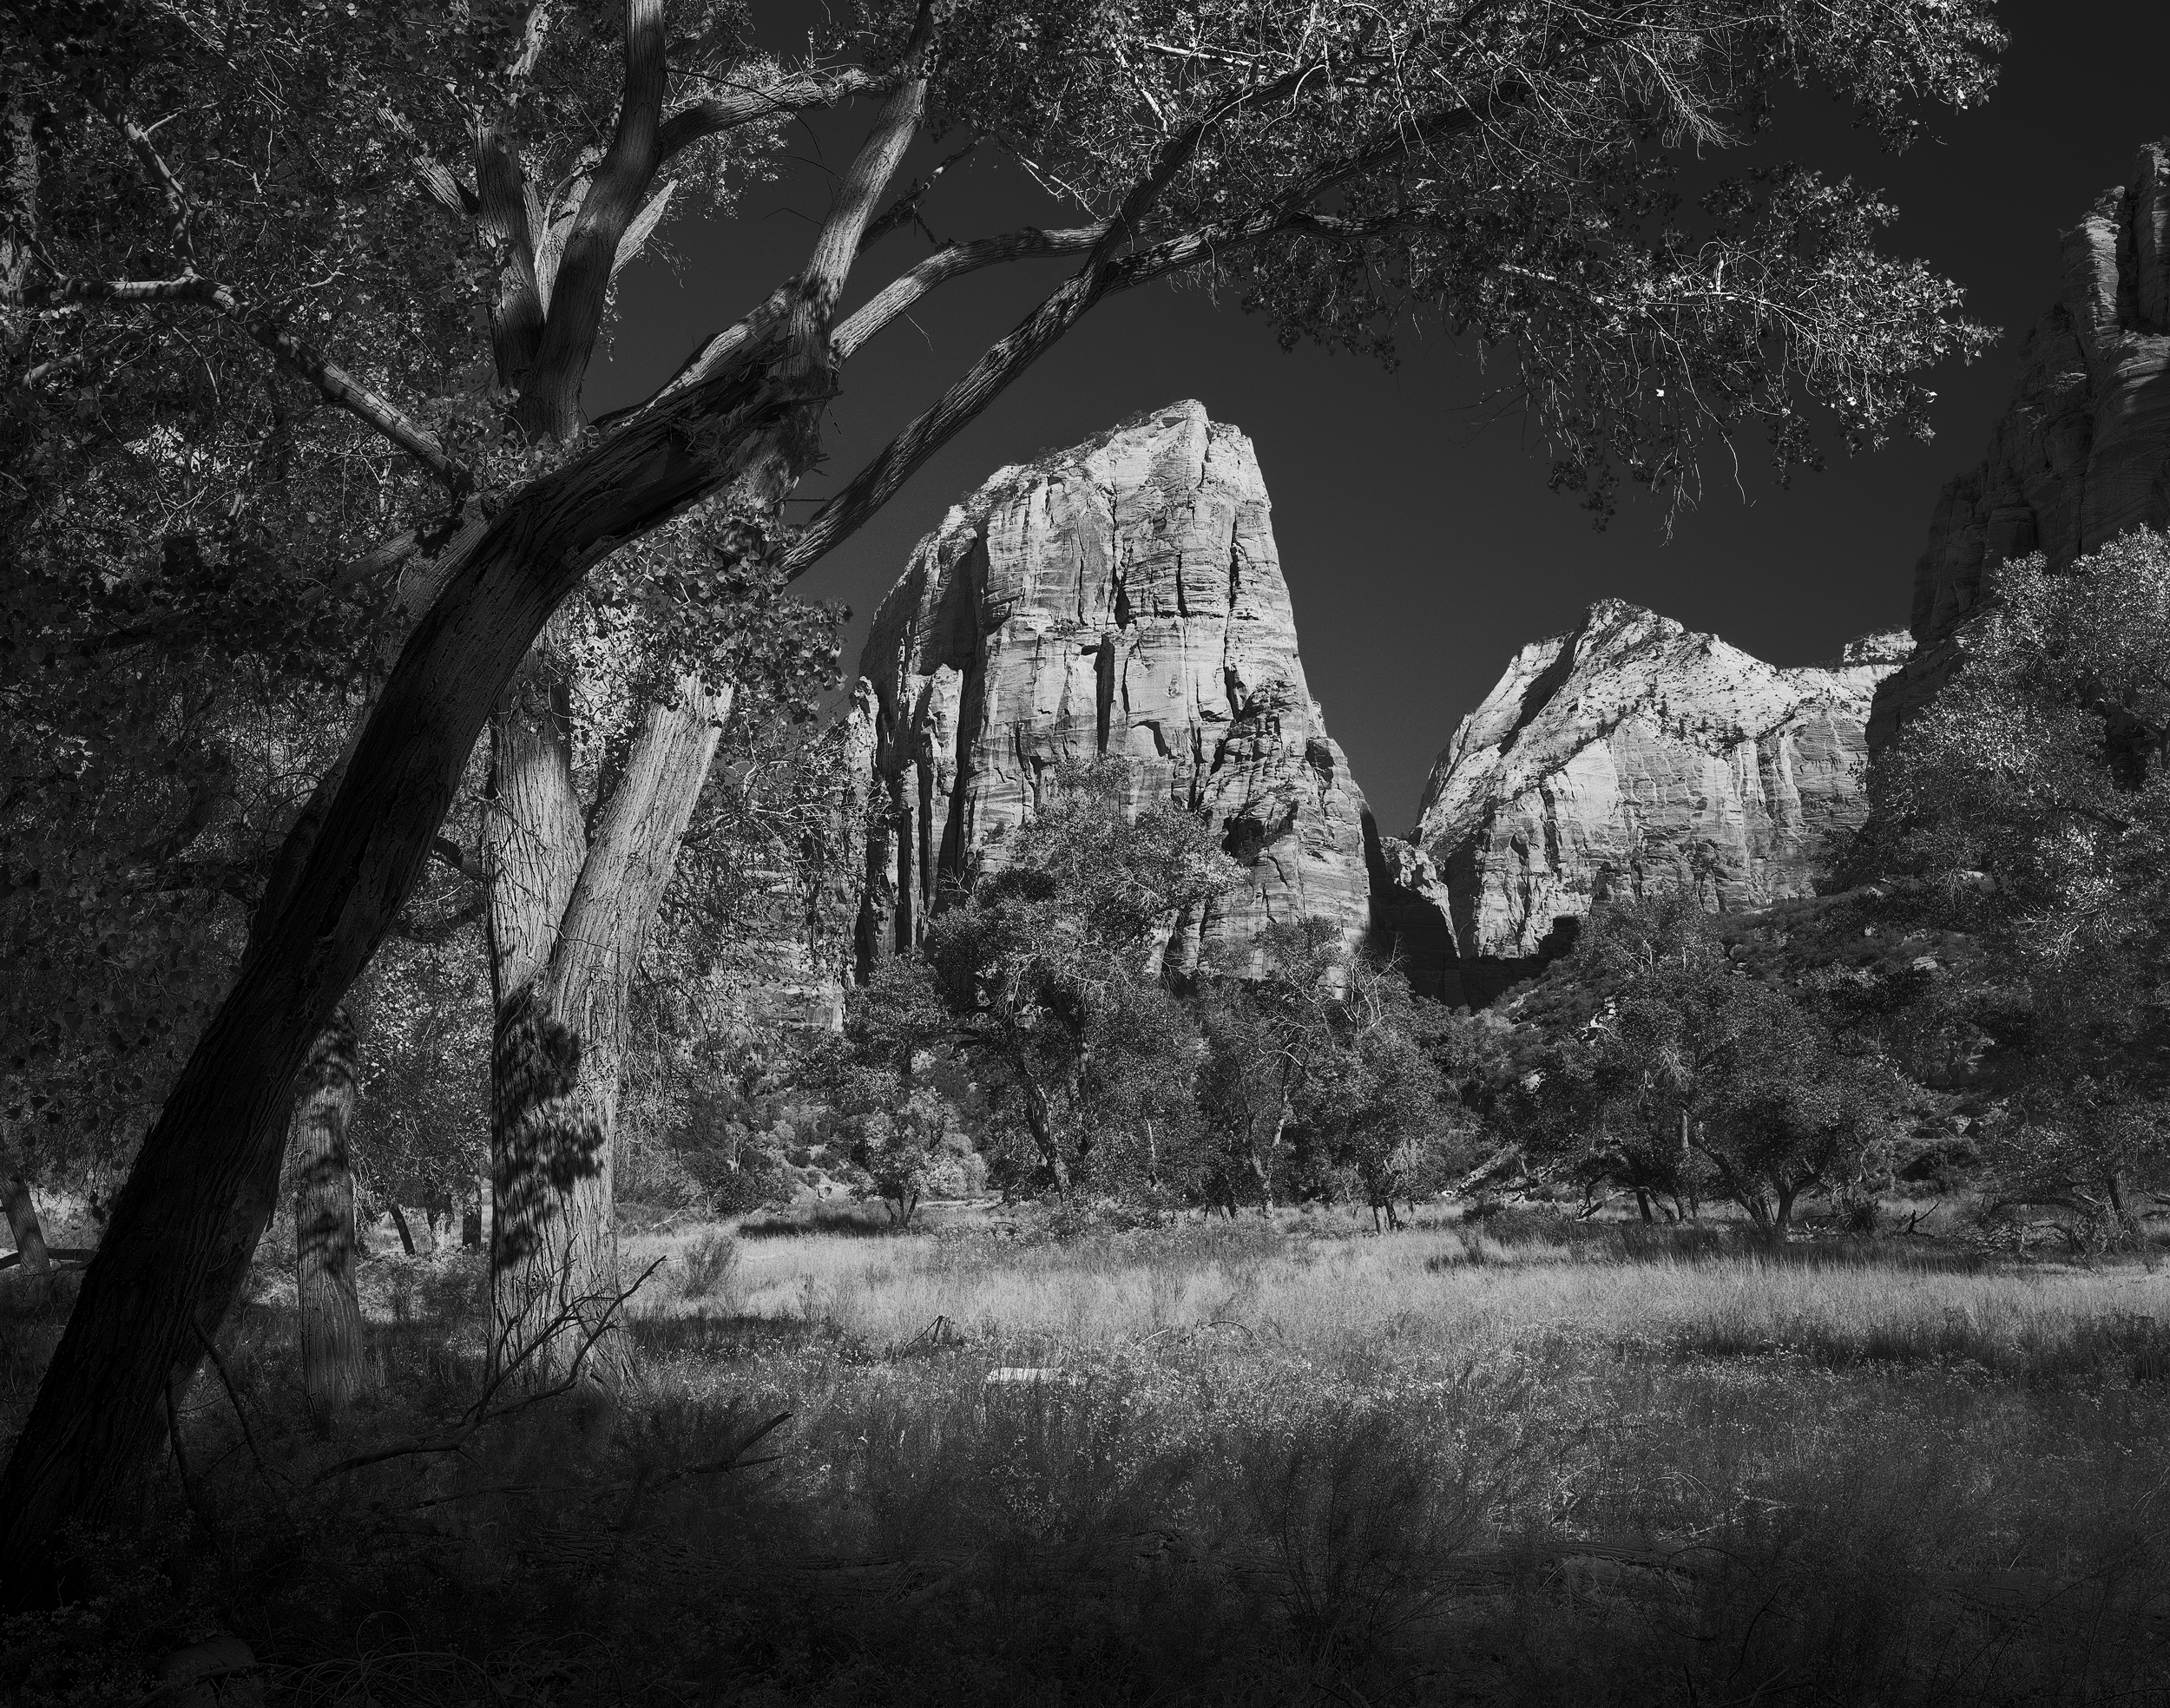 """Where Angels Tread"" 4x5 Ilford Delta 100, 90mm, f/45, 1/8s, red filter"